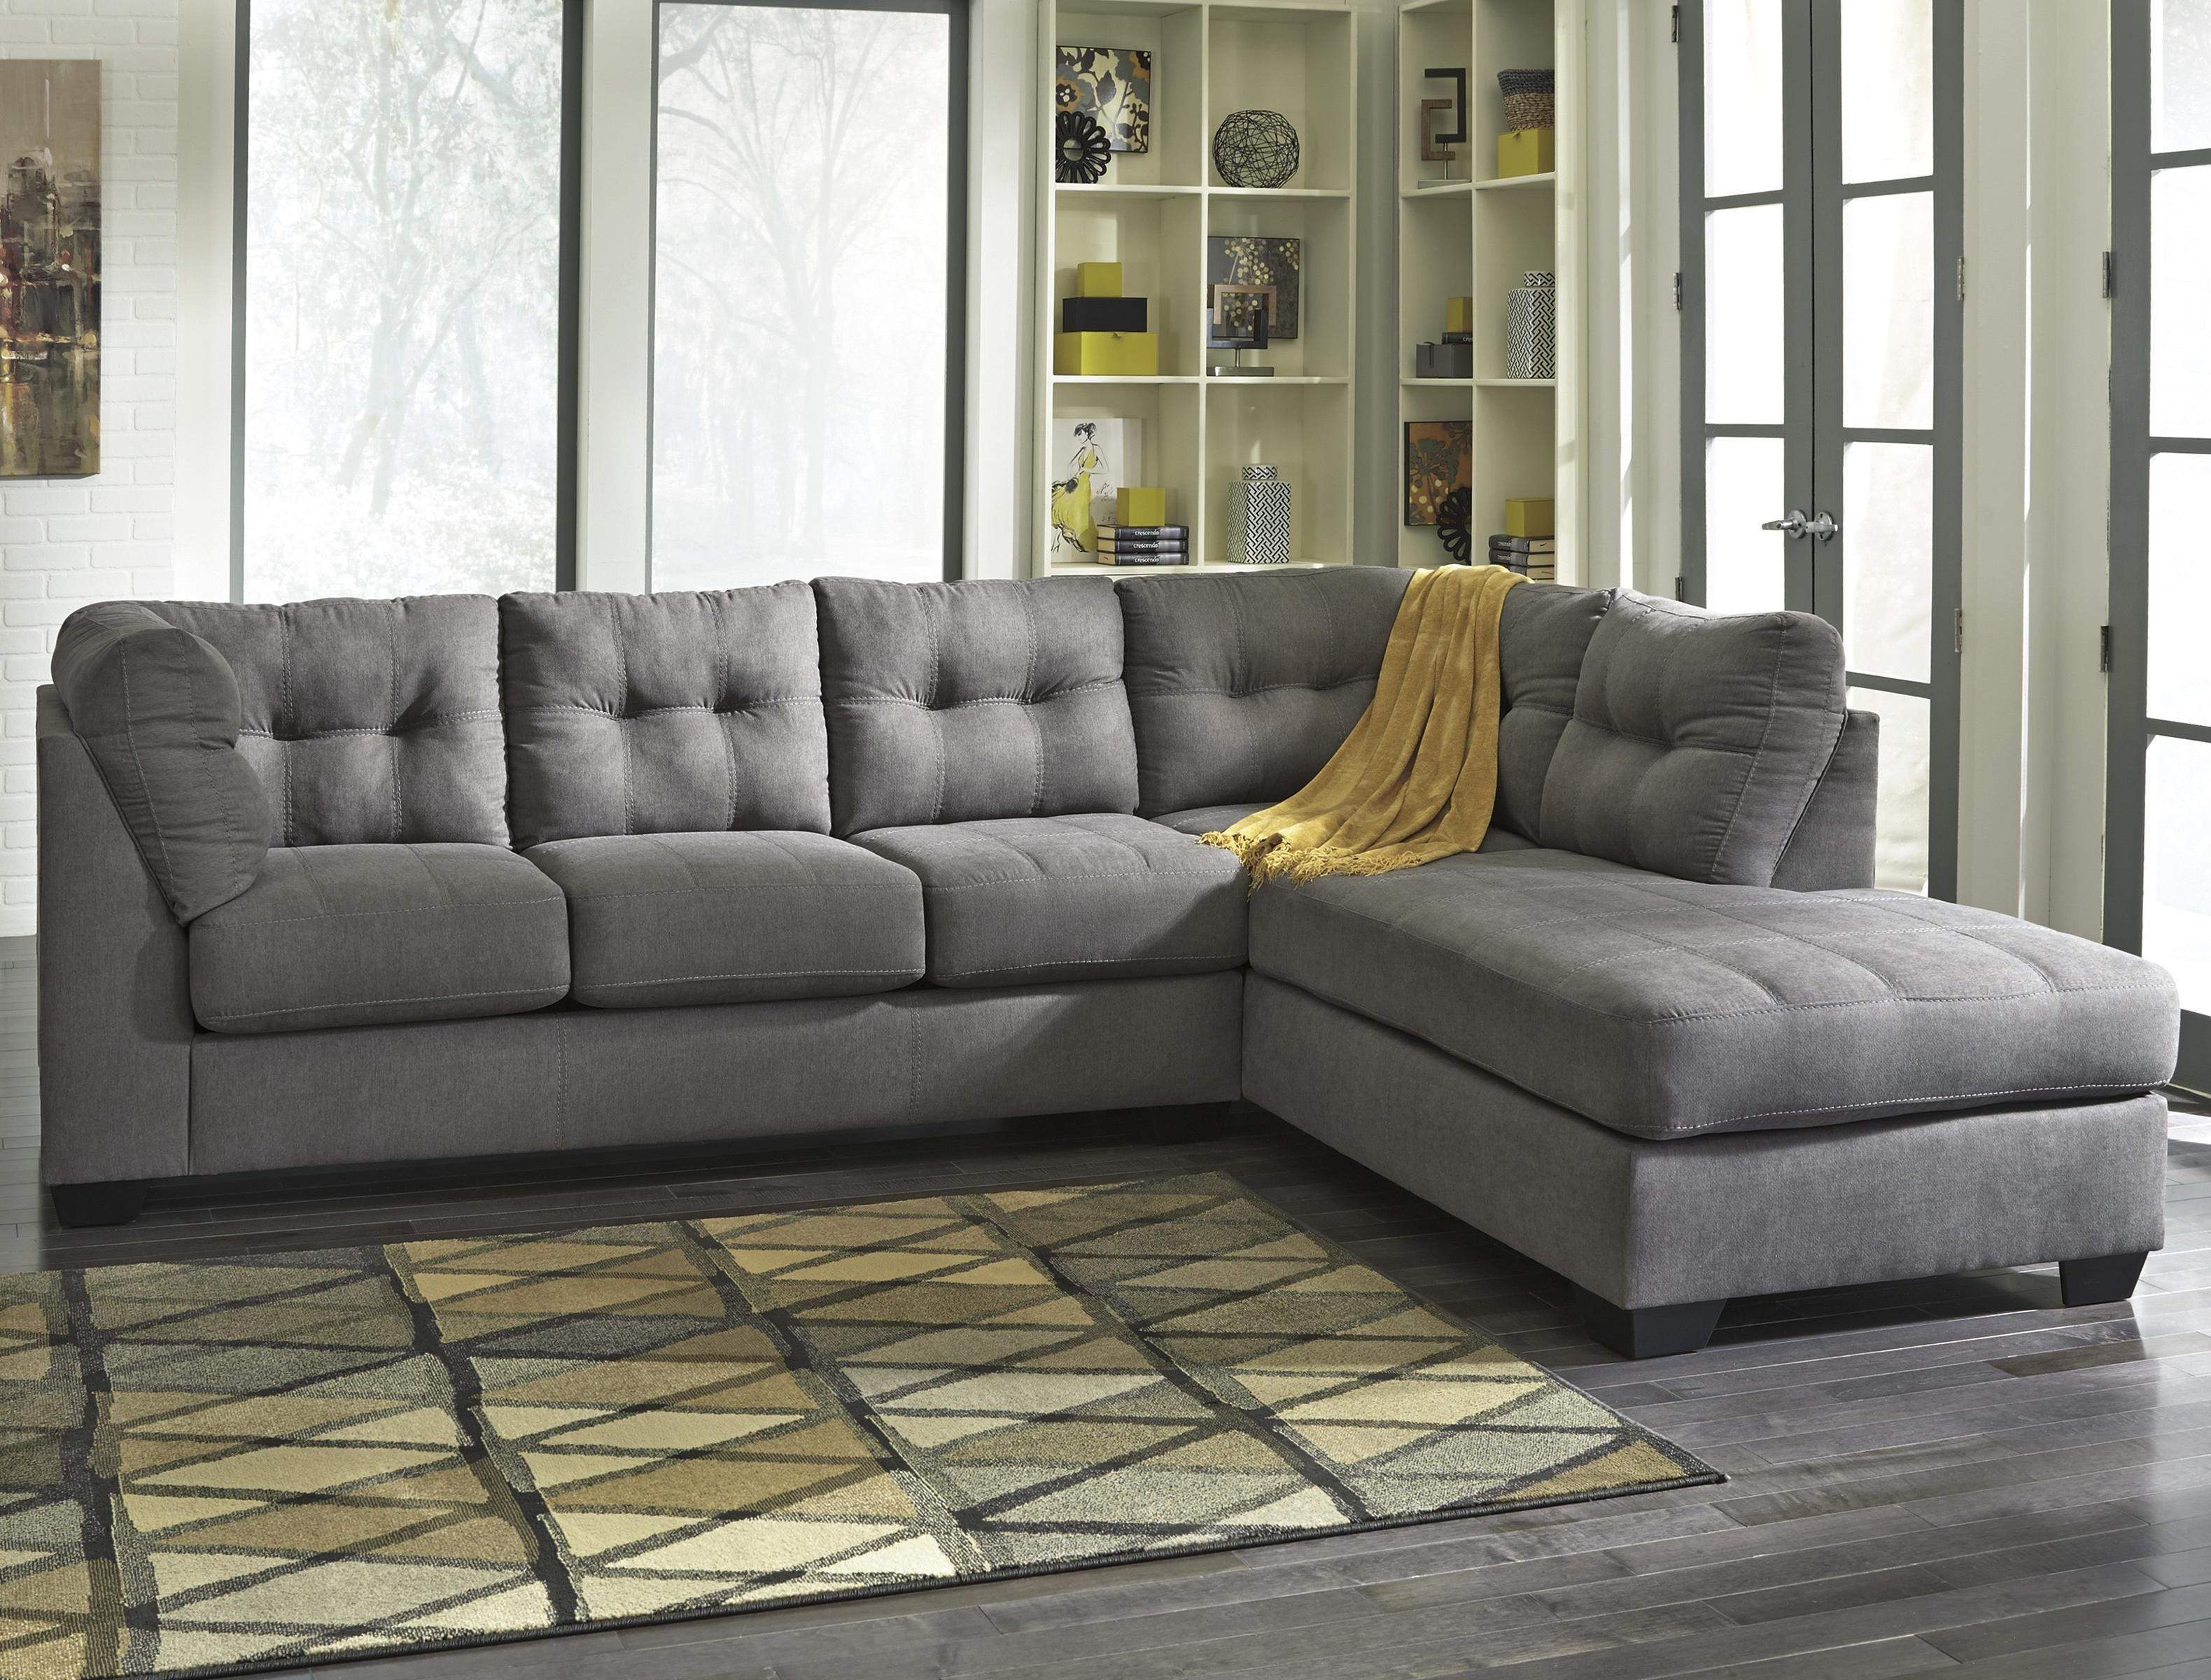 2 Piece Sectional w Sleeper Sofa & Chaise Maier Charcoal 2